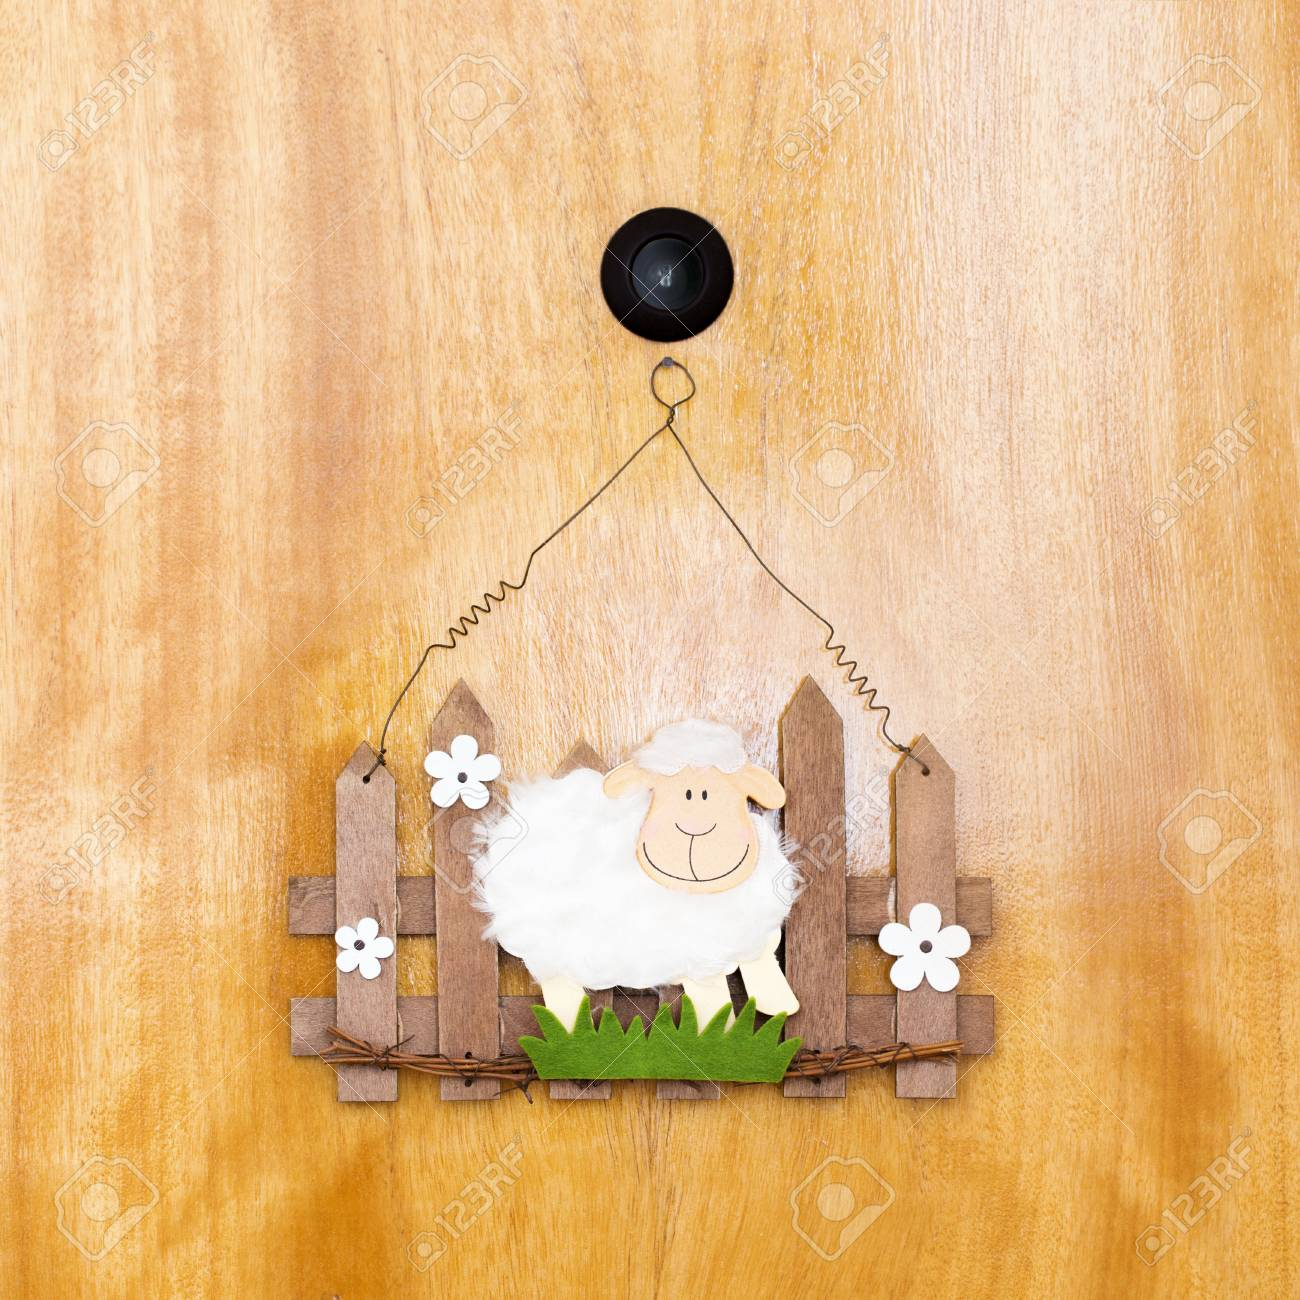 Easter welcome sheep with fence decoration on door